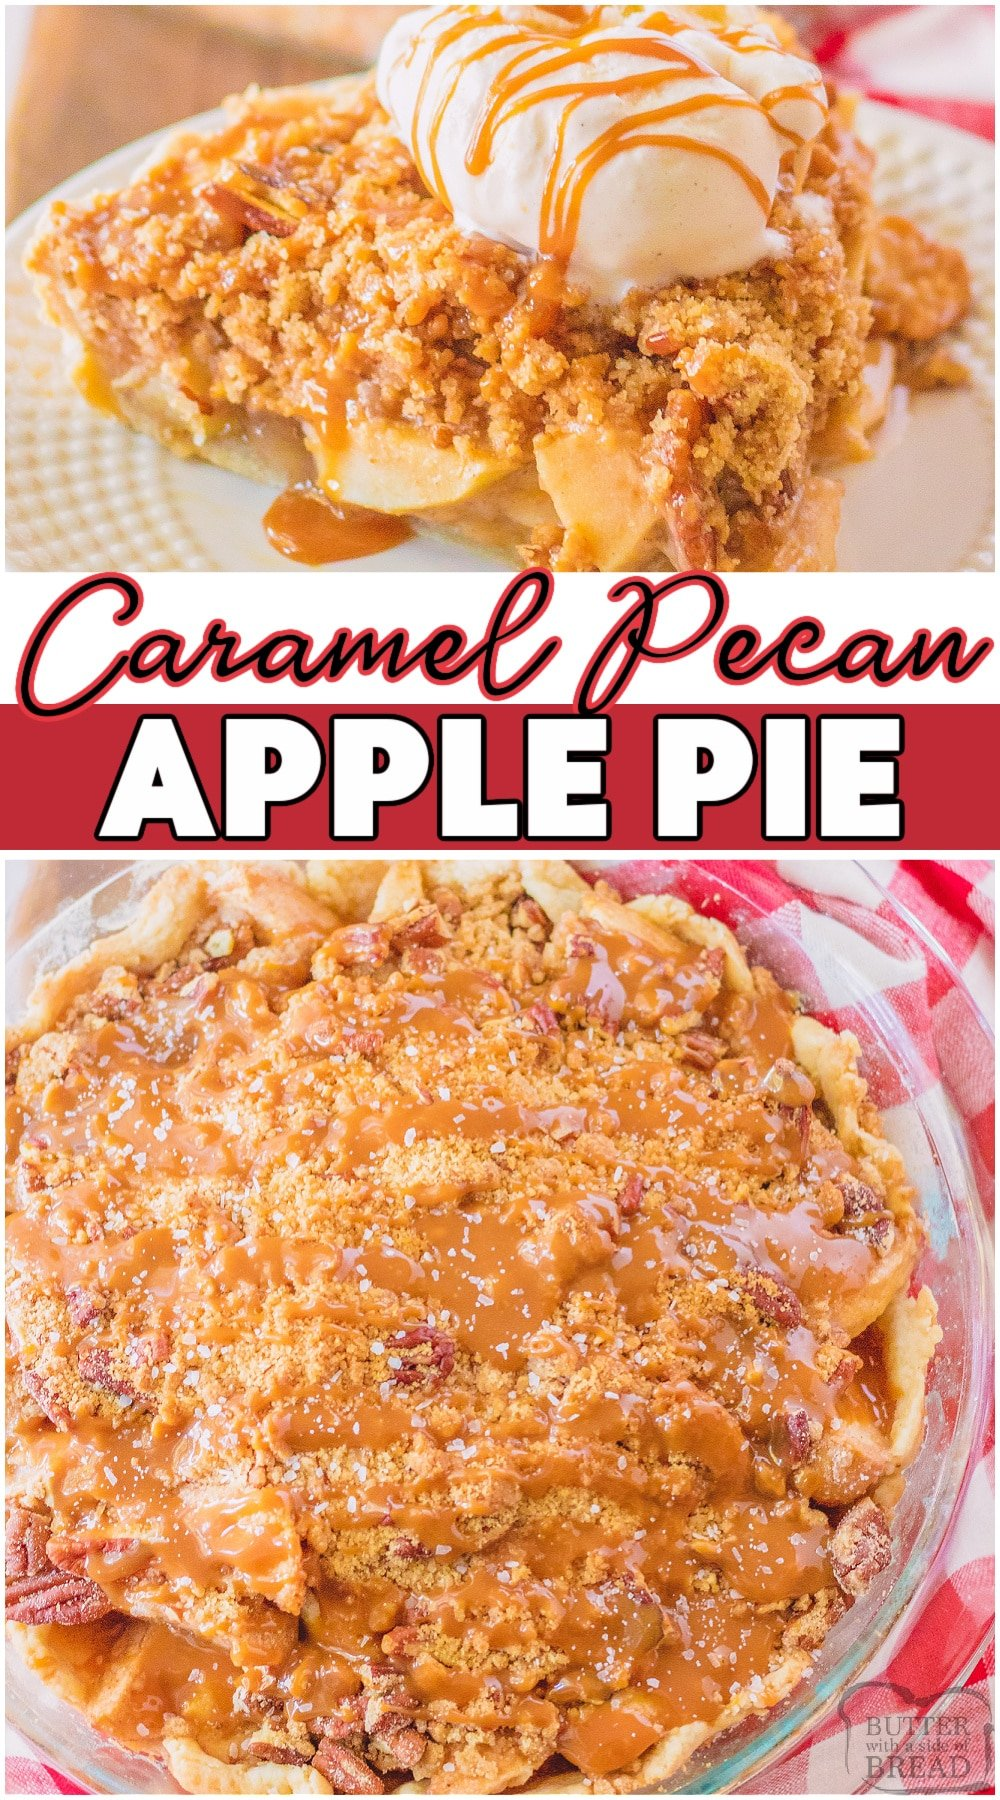 Homemade Caramel Apple Pie is a classic apple pie recipe with a pecan caramel twist! Sweet, fresh apples are tossed with a lovely spice blend, then topped with a Dutch crumble topping. Don't forget the caramel drizzle & chopped pecans on top! #pie #applepie #caramel #pecan #homemade #baking #easyrecipe from BUTTER WITH A SIDE OF BREAD